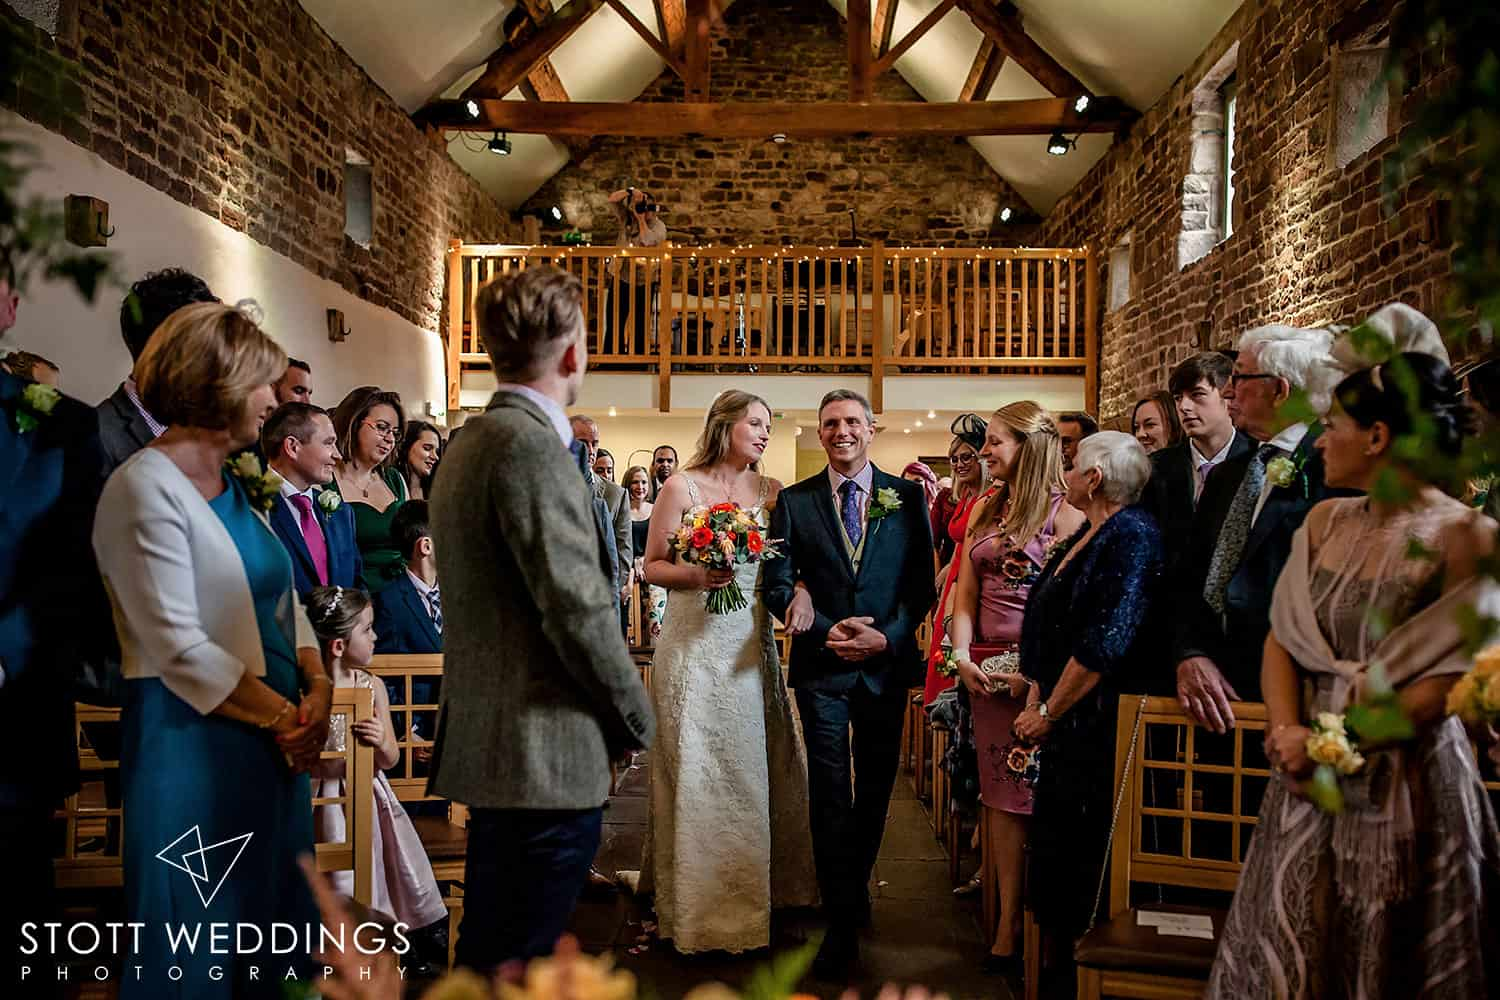 Autumnal Wedding at The Ashes